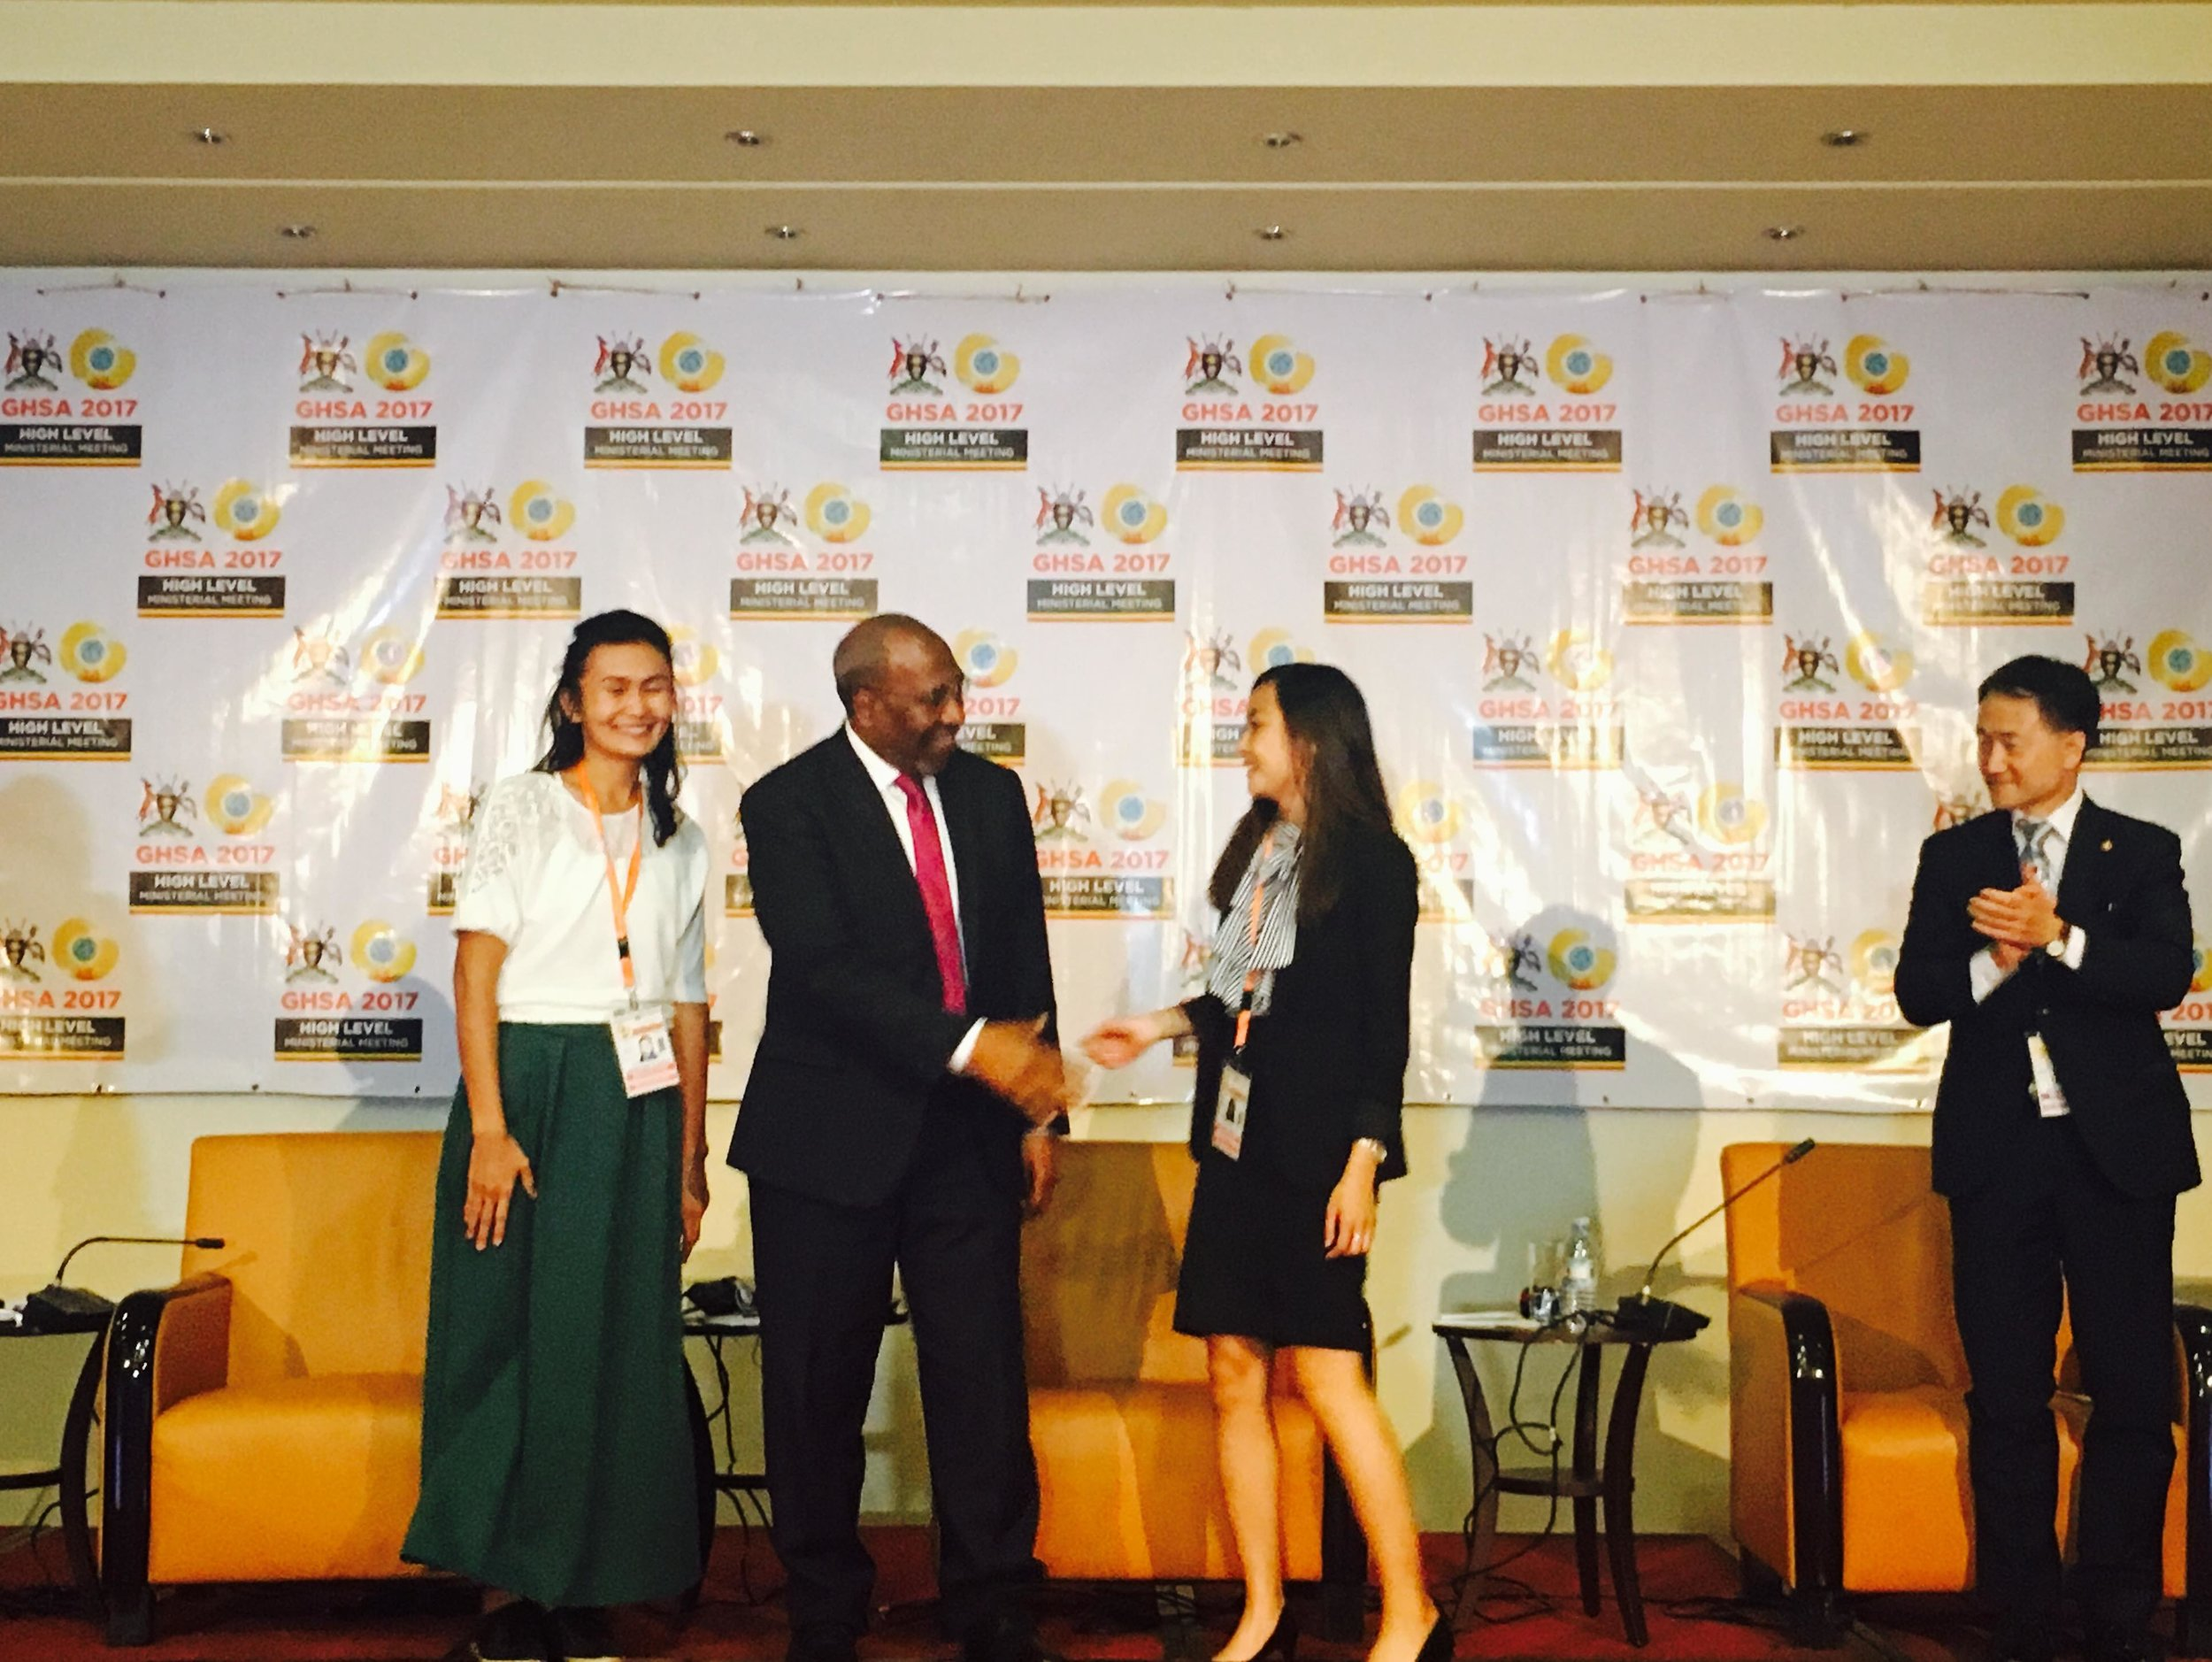 From left to right: Lyazzat Musralina (Scientific Researcher at Institute of General Genetics and Cytology of Kazakhstan), Hon. Ruhakana Rugunda (Prime Minister, Uganda), Ashley Tseng (McGill University), and Hon. Park Neunghoo (Minister of Health & Welfare, Republic of Korea). Ashley is shown here shaking the Prime Minister of Uganda's hand after his announcement of her and Lyazzat as the winners of Nuclear Threat Initiative's Next Generation for Biosecurity in GHSA Competition.